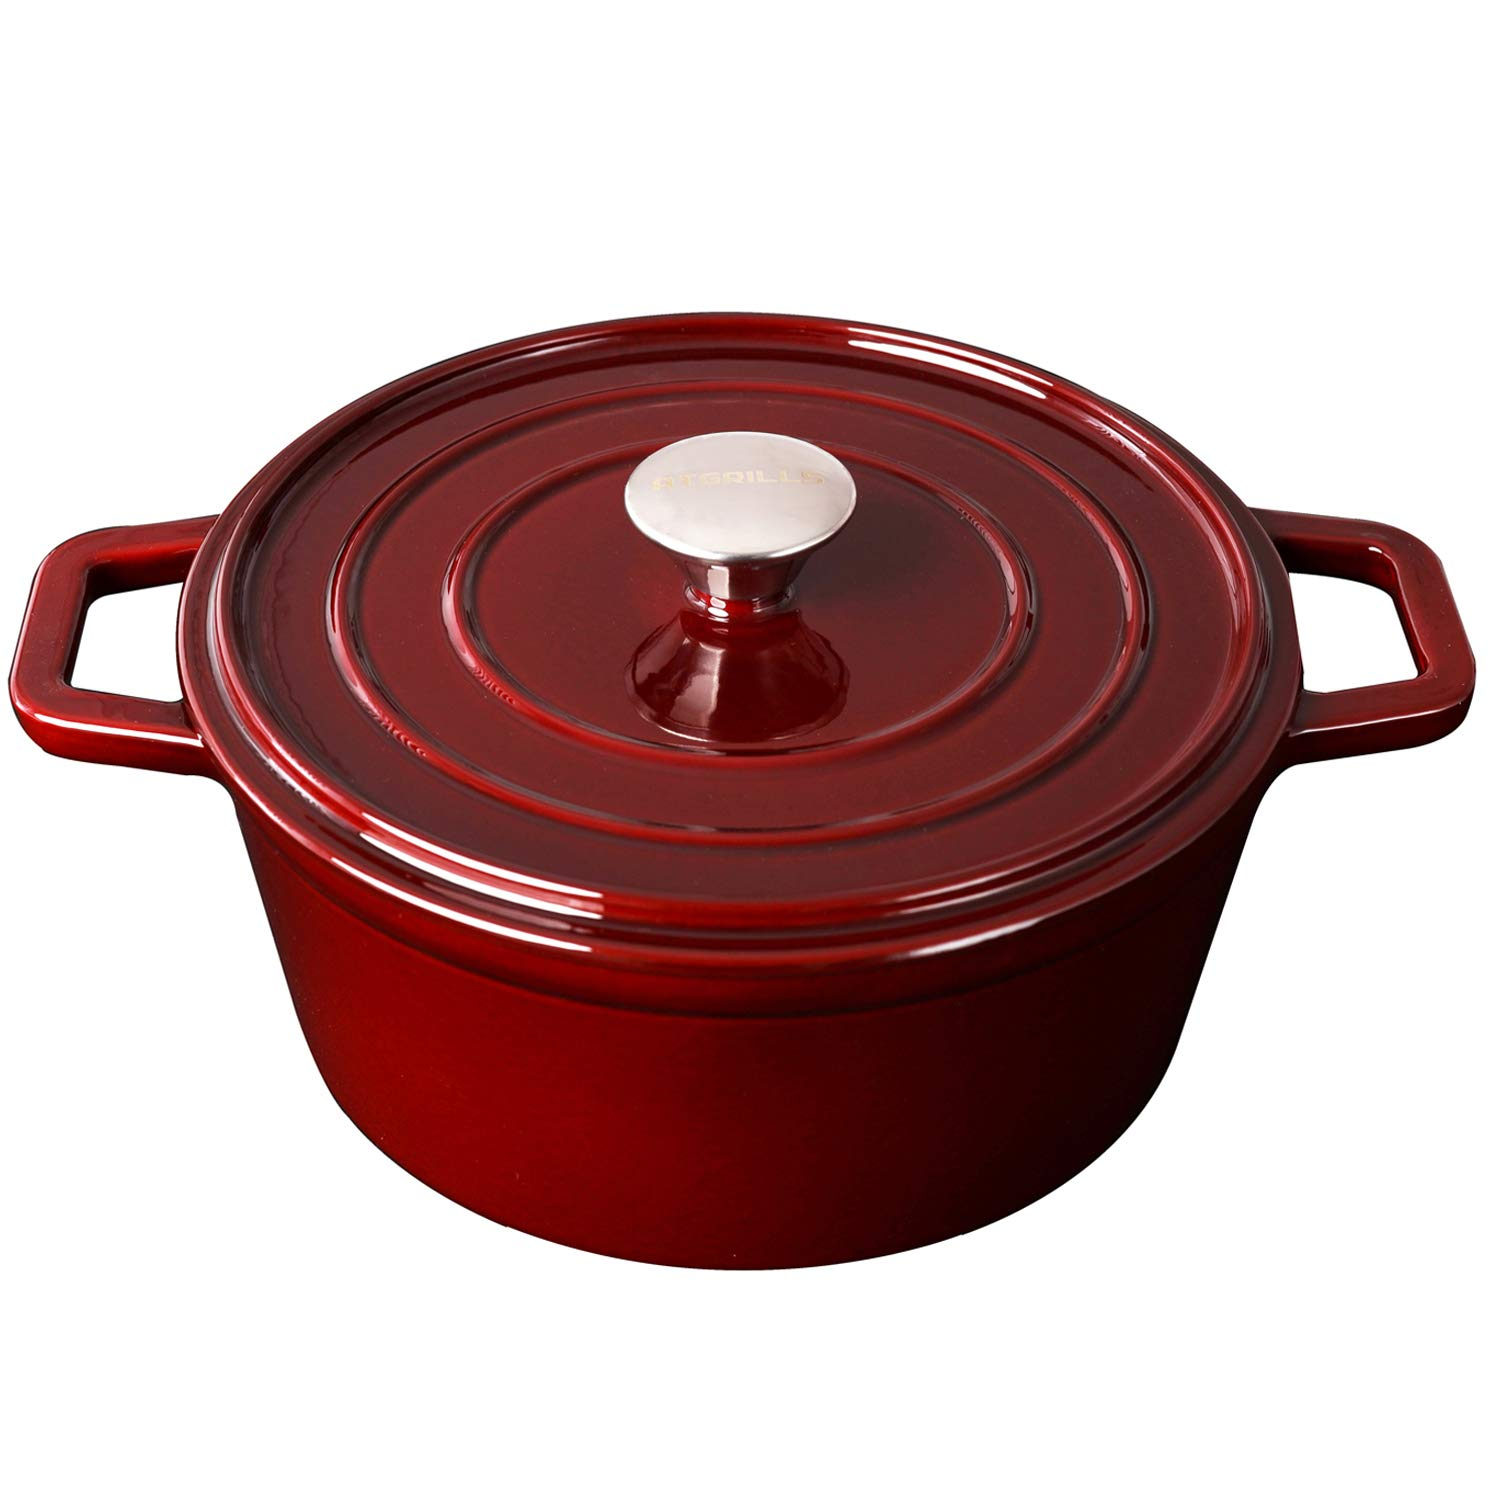 Enameled Cast Iron Dutch/French Oven, 4.5-Quart Round Dutch Oven with Self Basting Lid & Stainless Steel Knob, Electric Gas Stove Top Compatible Cookware, Claret (IR100-Claret, 4.5qt)